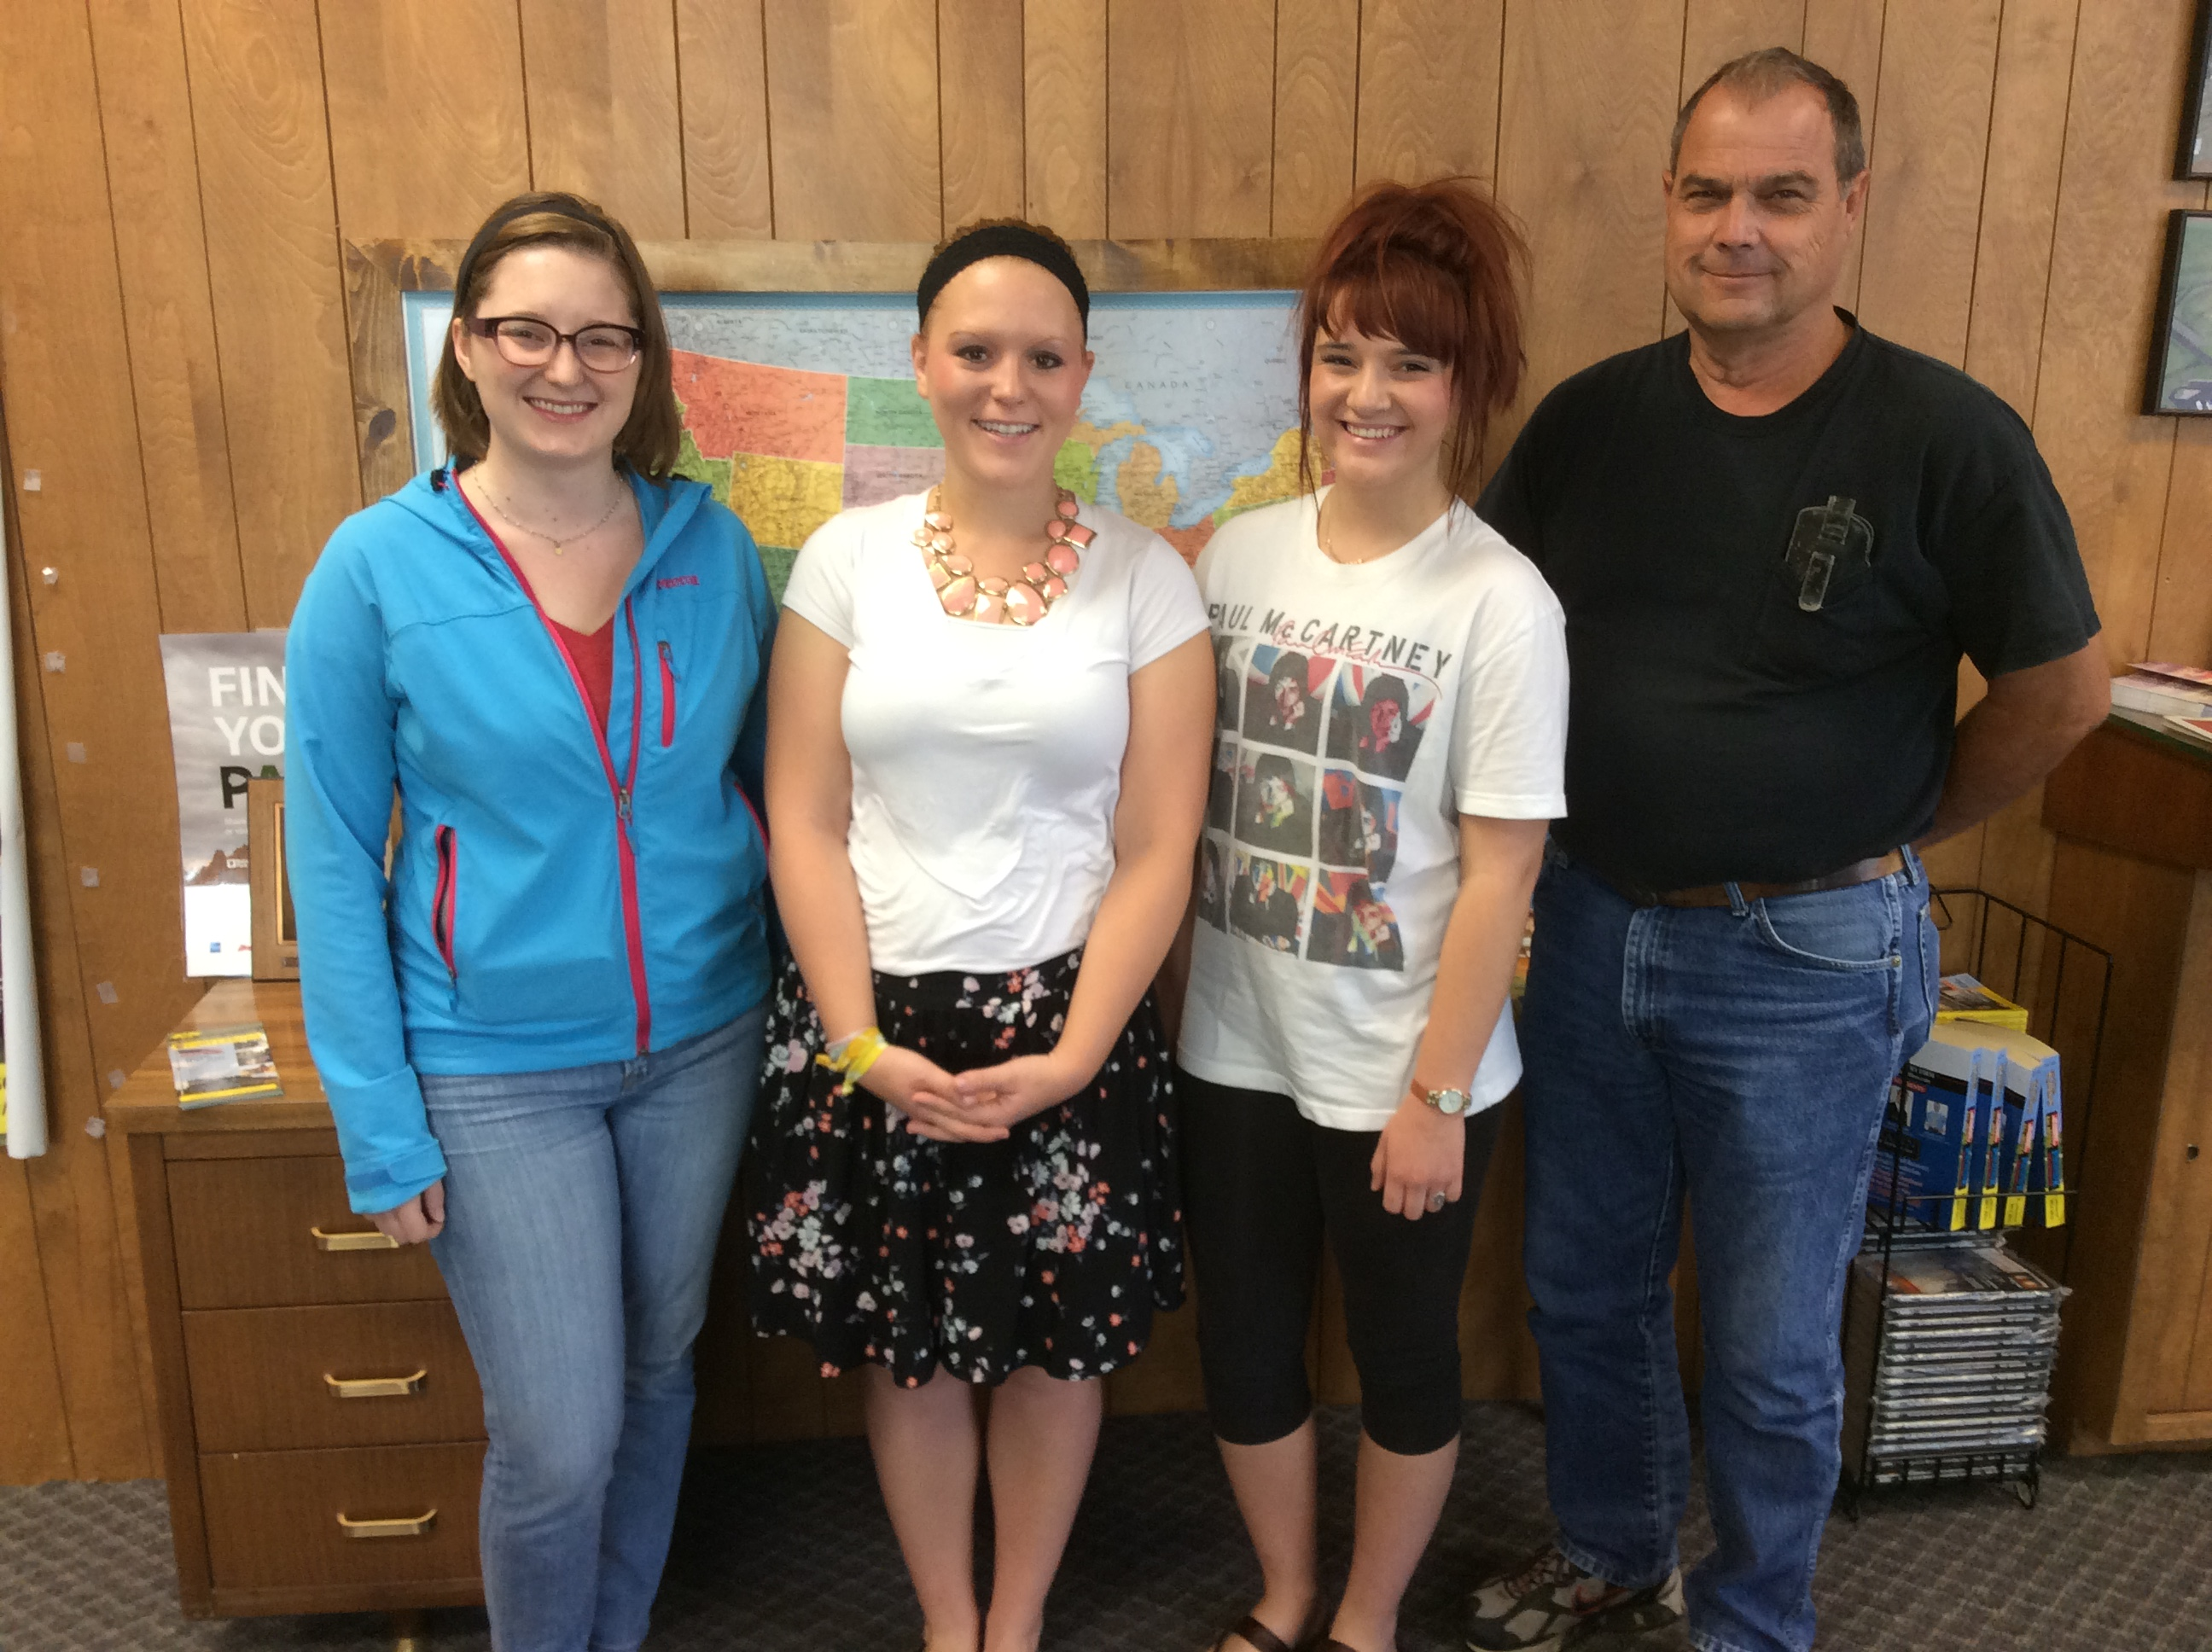 Tom Giessel join us in a visit with OC Intern Supervisor Sydnee Blanton in Larned, KS